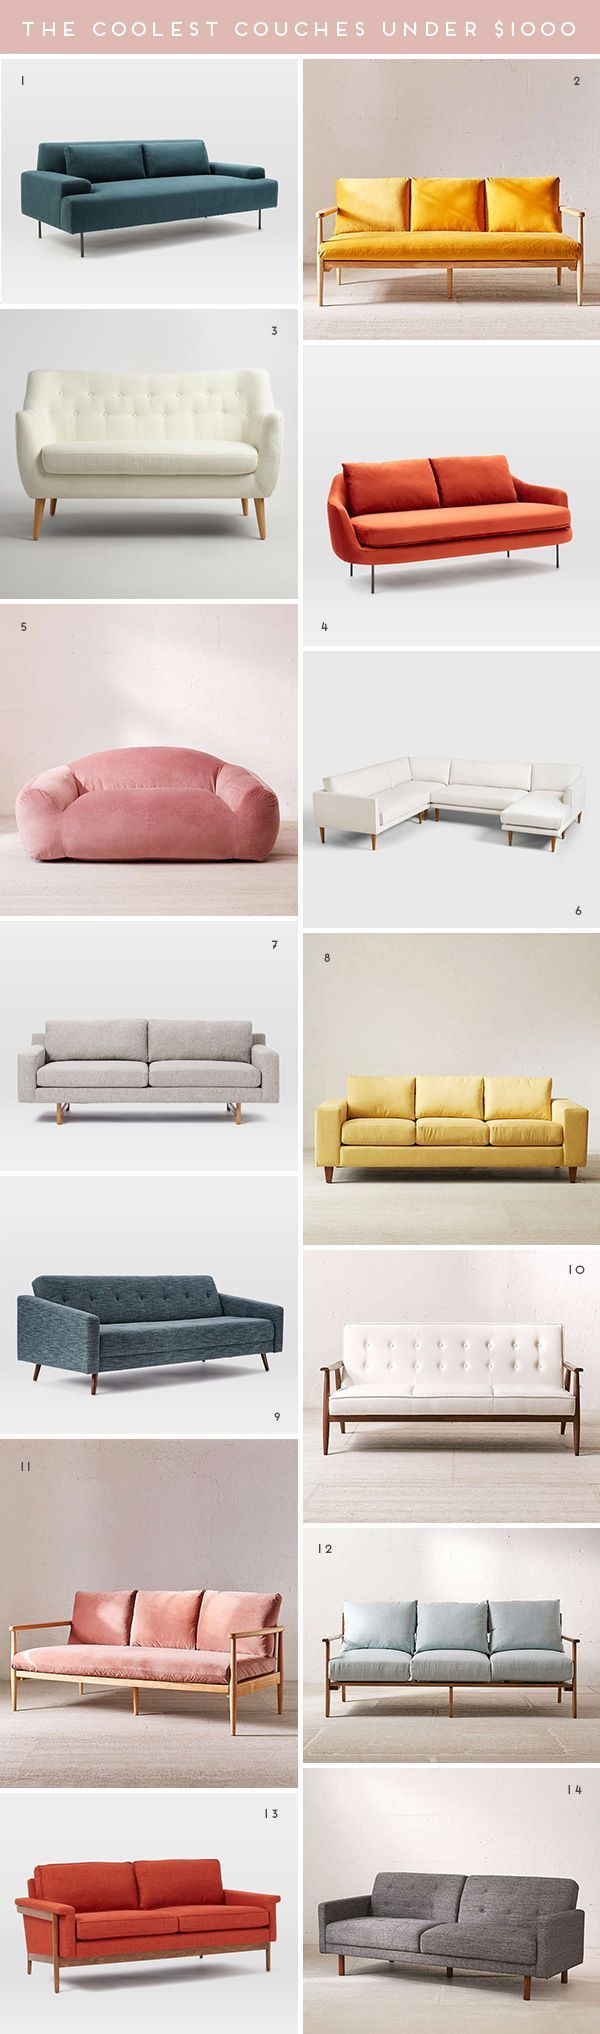 Couch Potato 16 Stylish Modern Sofas Under 1 000 Cool Couches